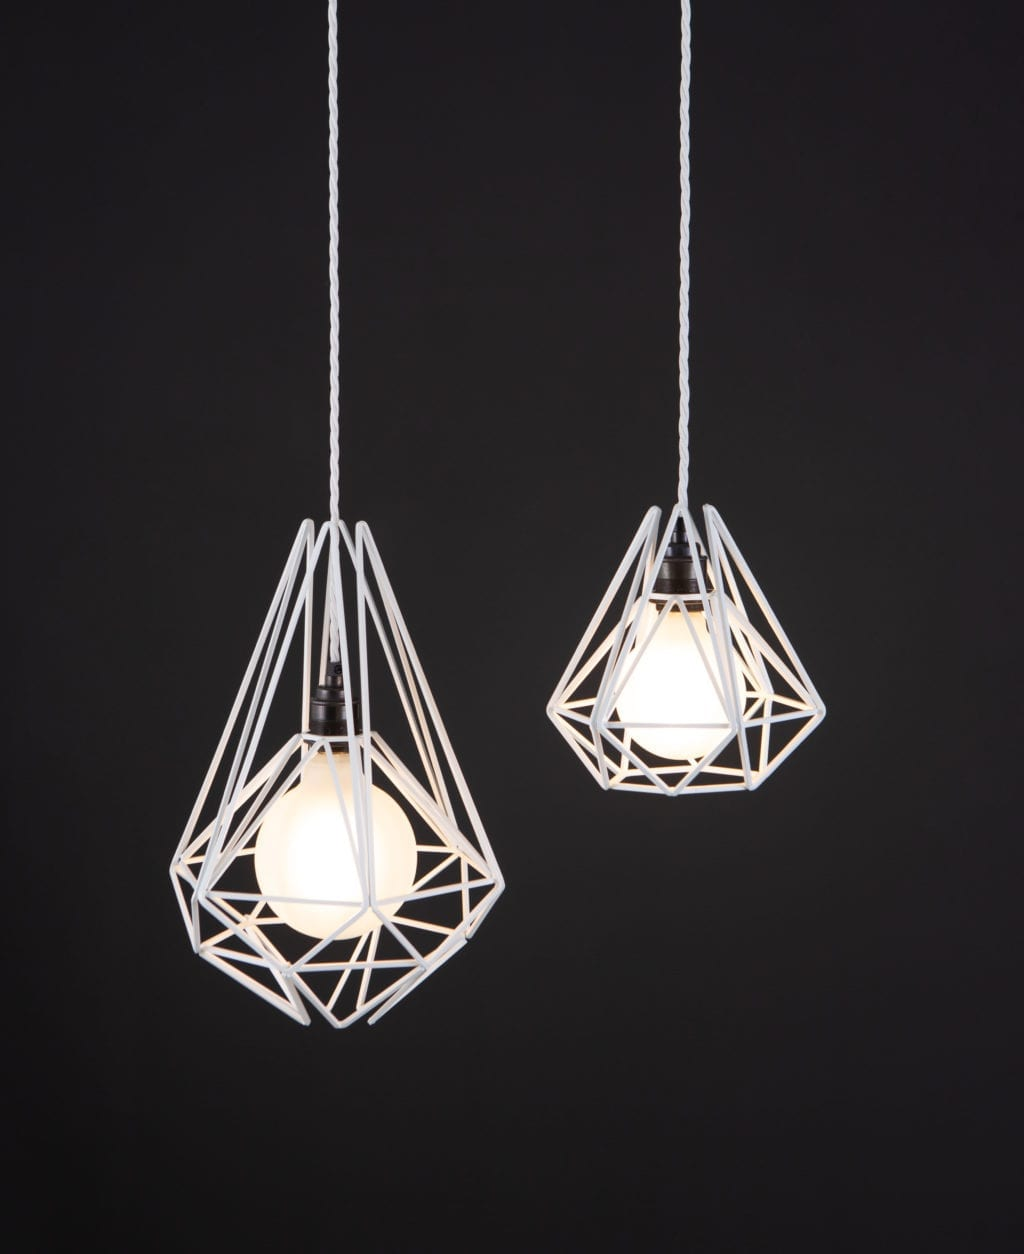 white metal pendant light with frosted bulb suspended from white twisted fabric cable against black background